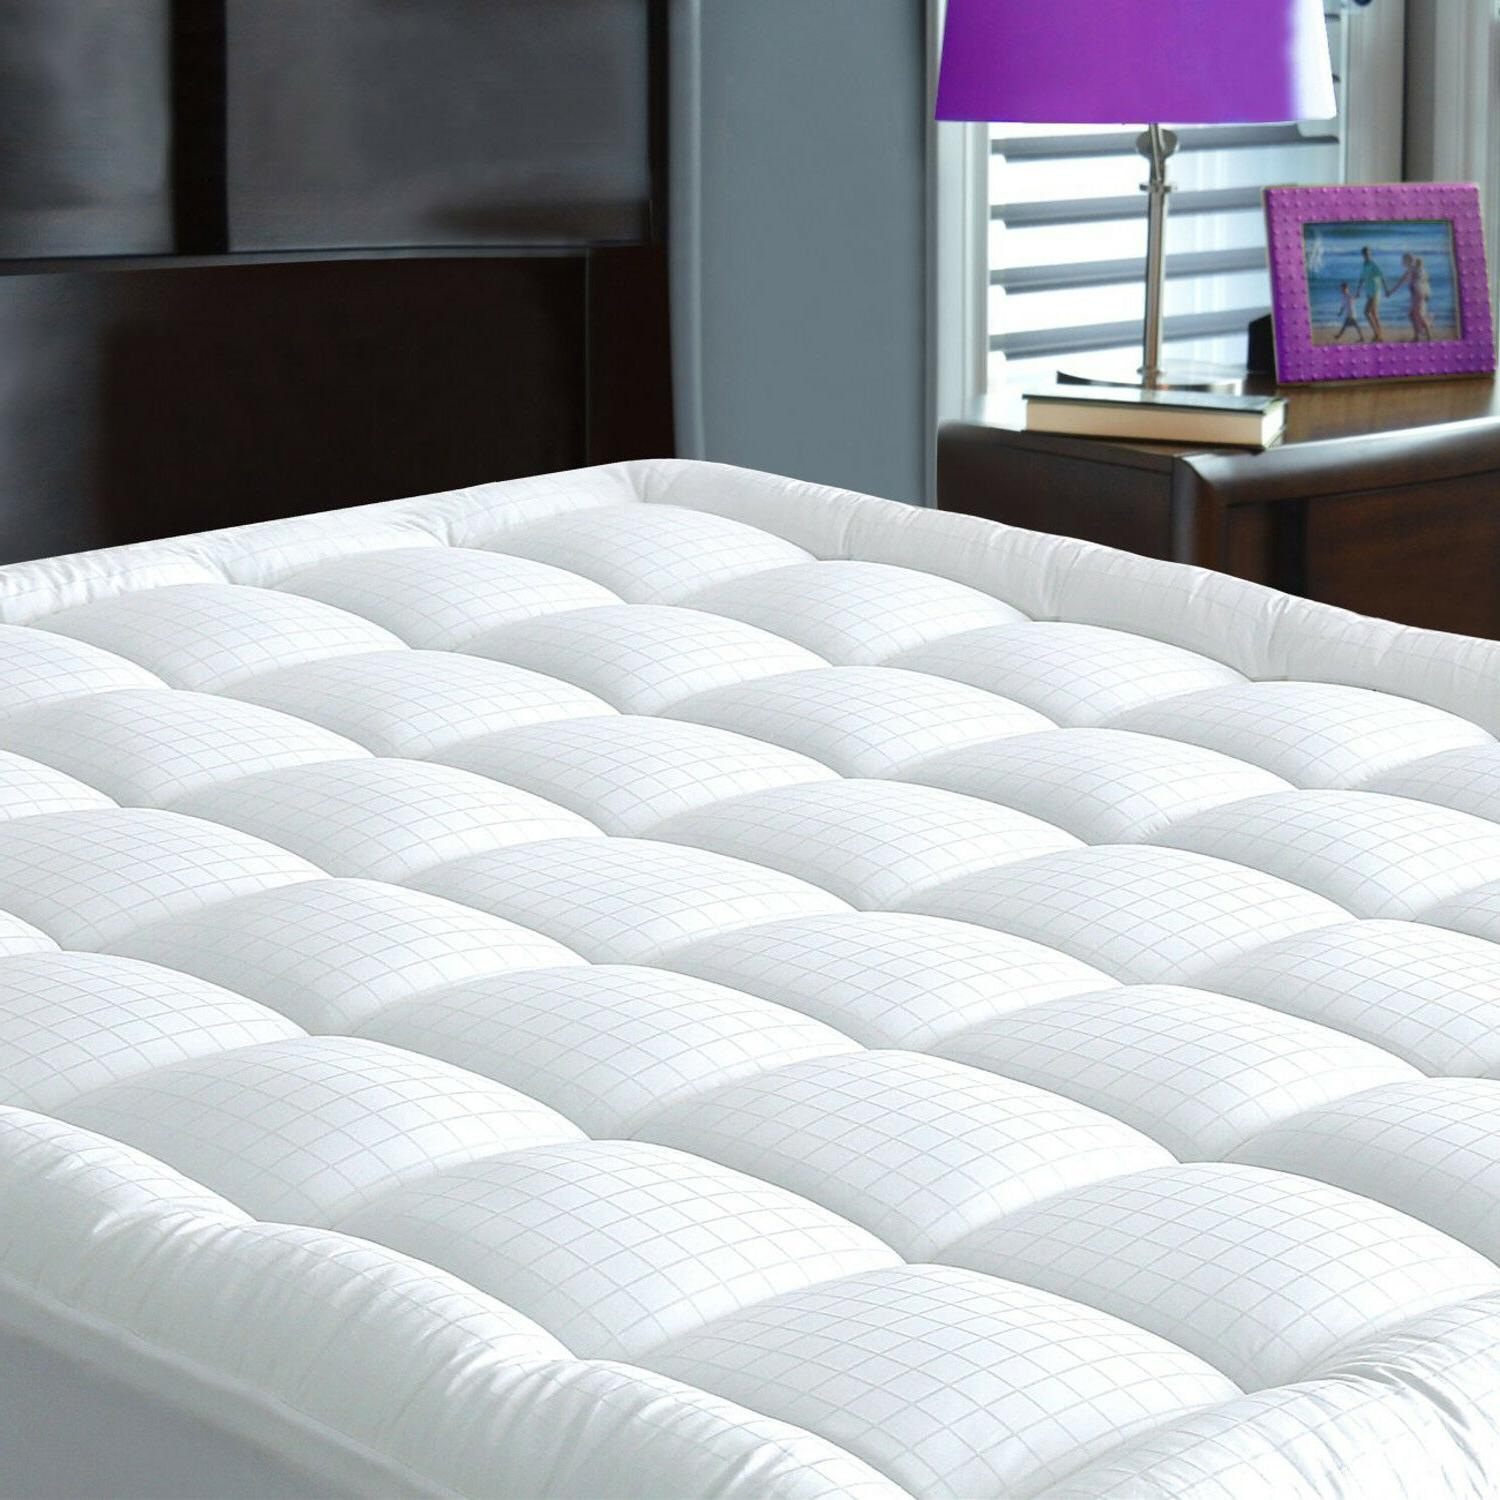 Mattress Topper Bed Pad Case Cover Pillow Top Soft Breathabl